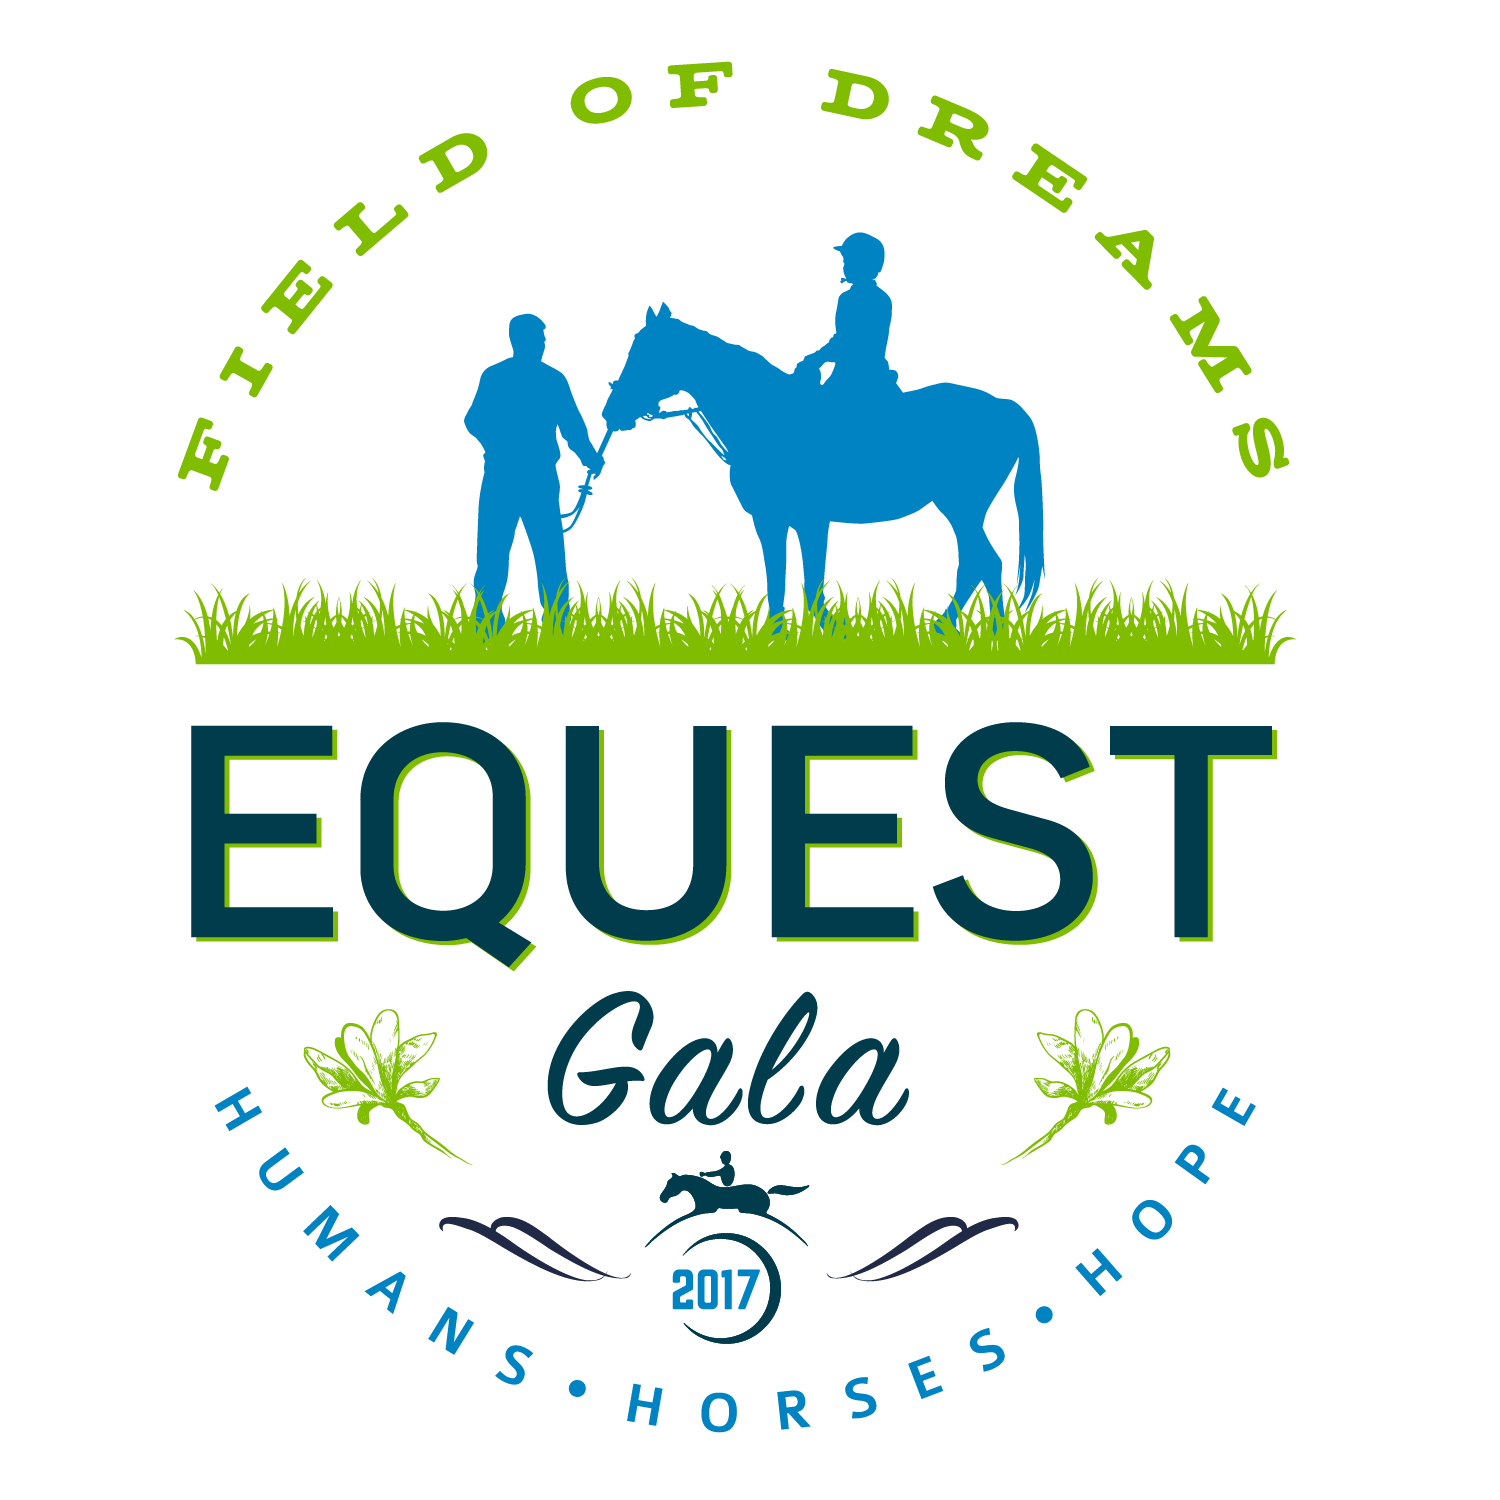 2017 Equest Gala: Field of Dreams